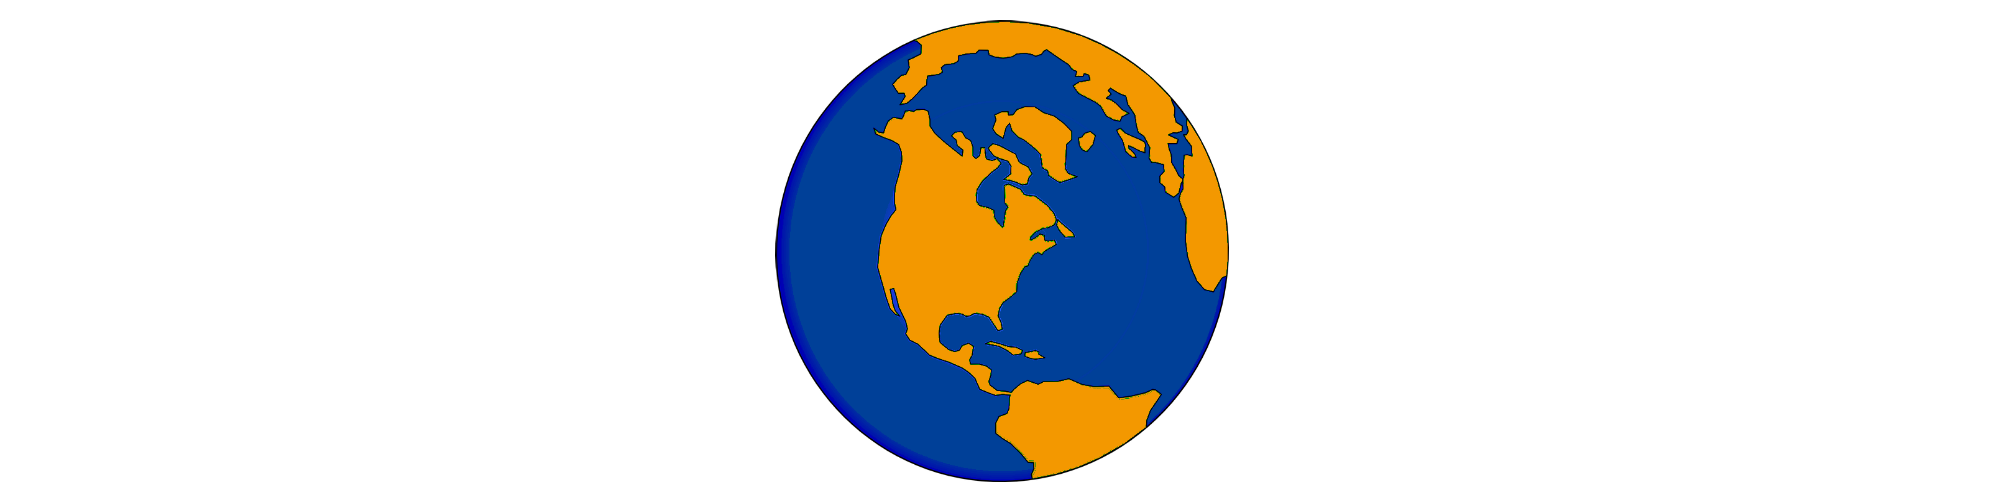 Click here for the globe icon in orange and blue colors